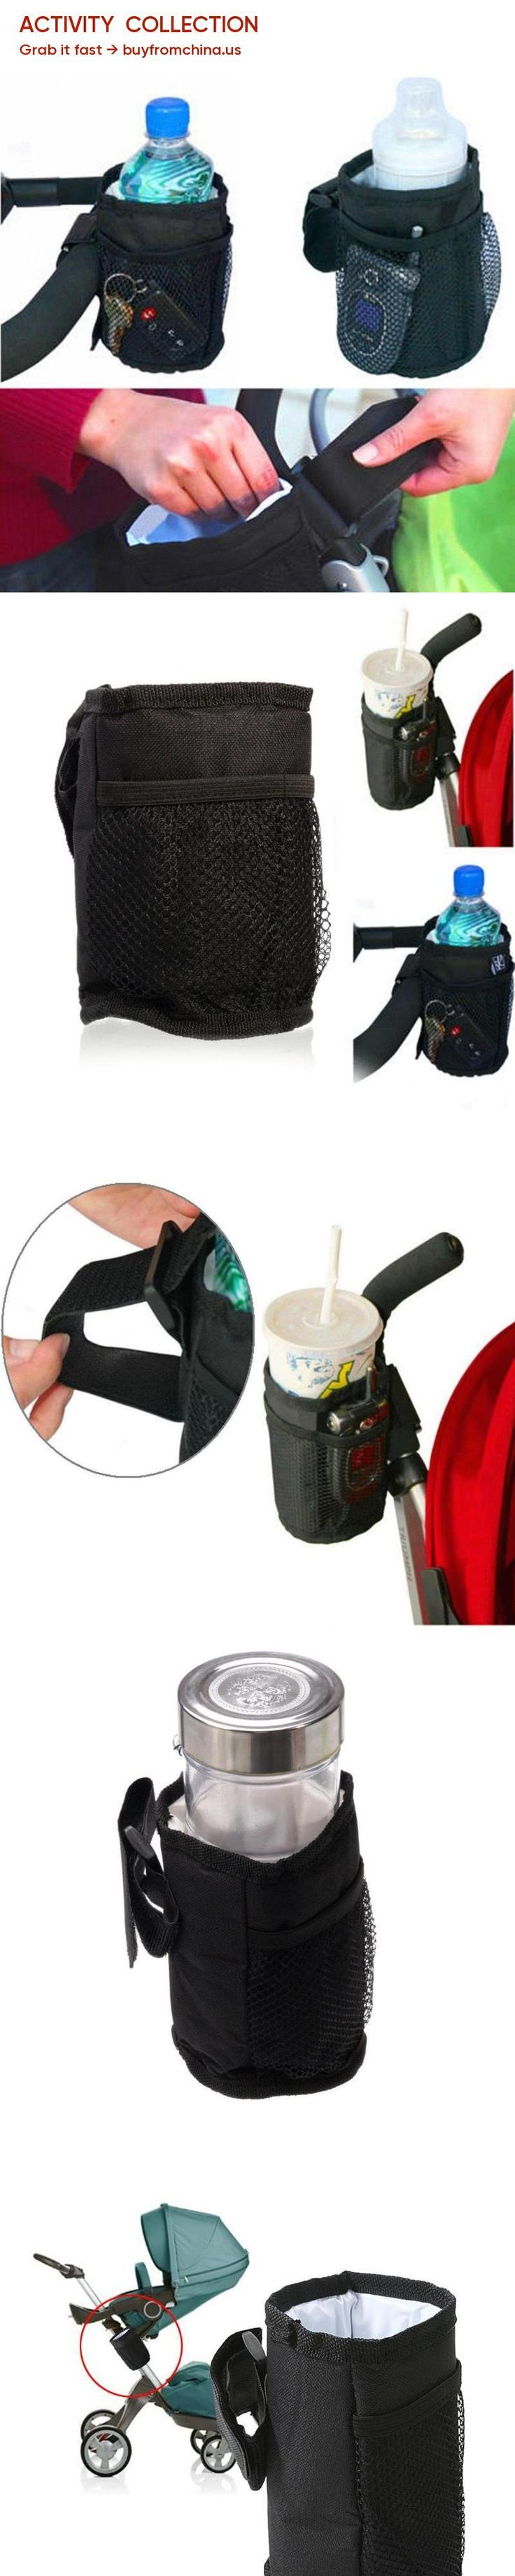 Baby Stroller bag Accessories Waterproof Stroller Insulated Cup Holder Bottle Dr…